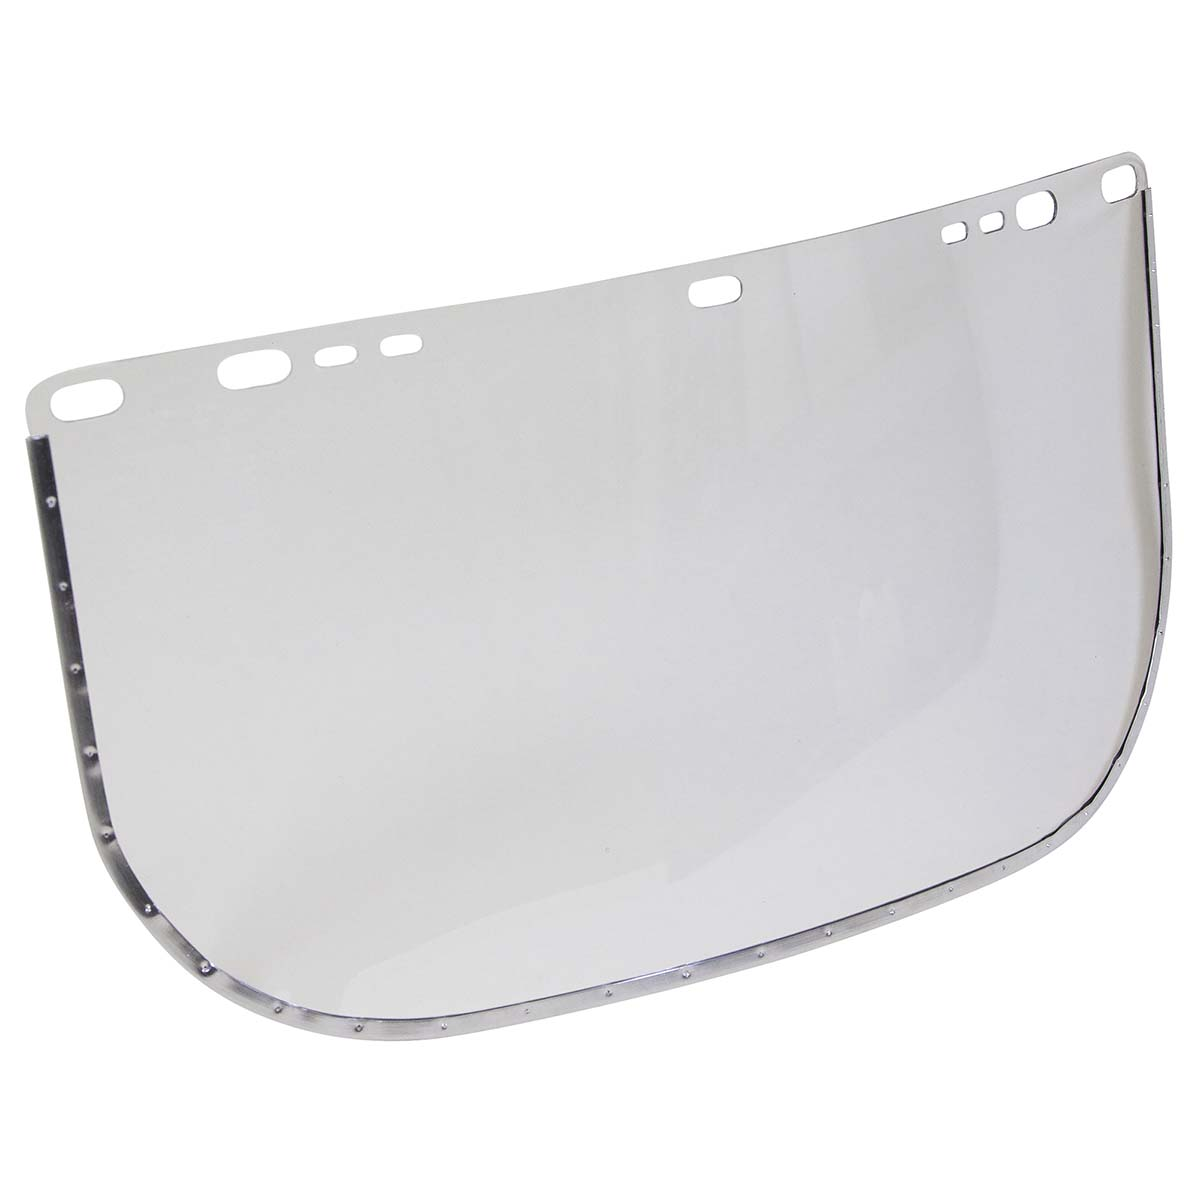 "Jackson Safety F30 Acetate Face Shield (29052), 8"" x 15.5"" Clear, Reusable Face Protection, 24 Shields / Case"